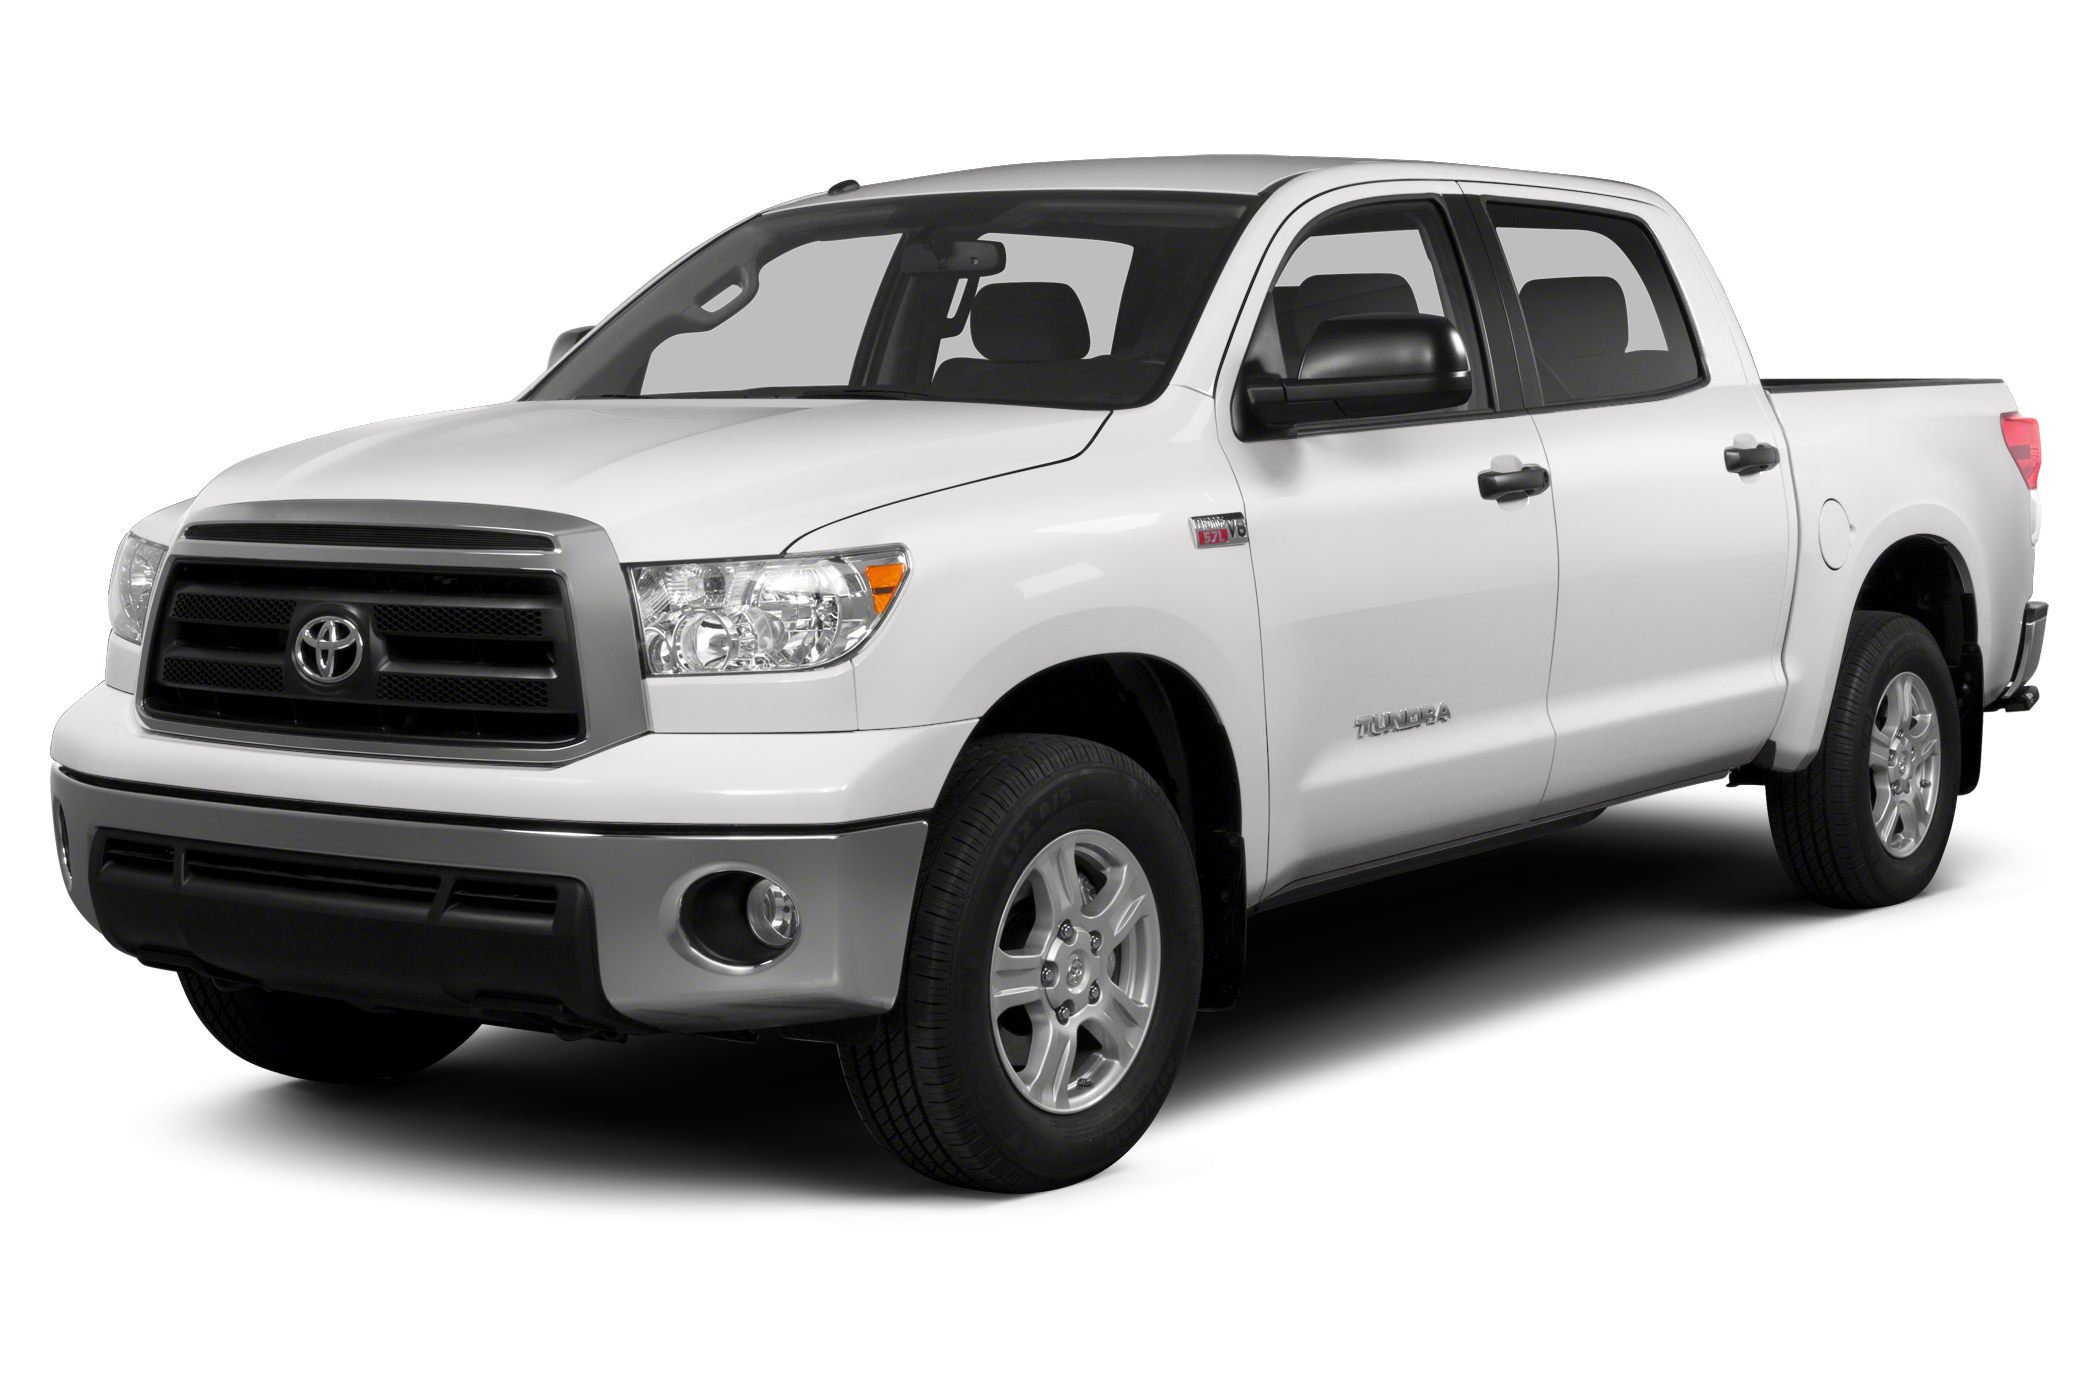 2013 Toyota Tundra Grade Miles 44905Color Gray Stock T41282AC VIN 5TFDY5F14DX284298